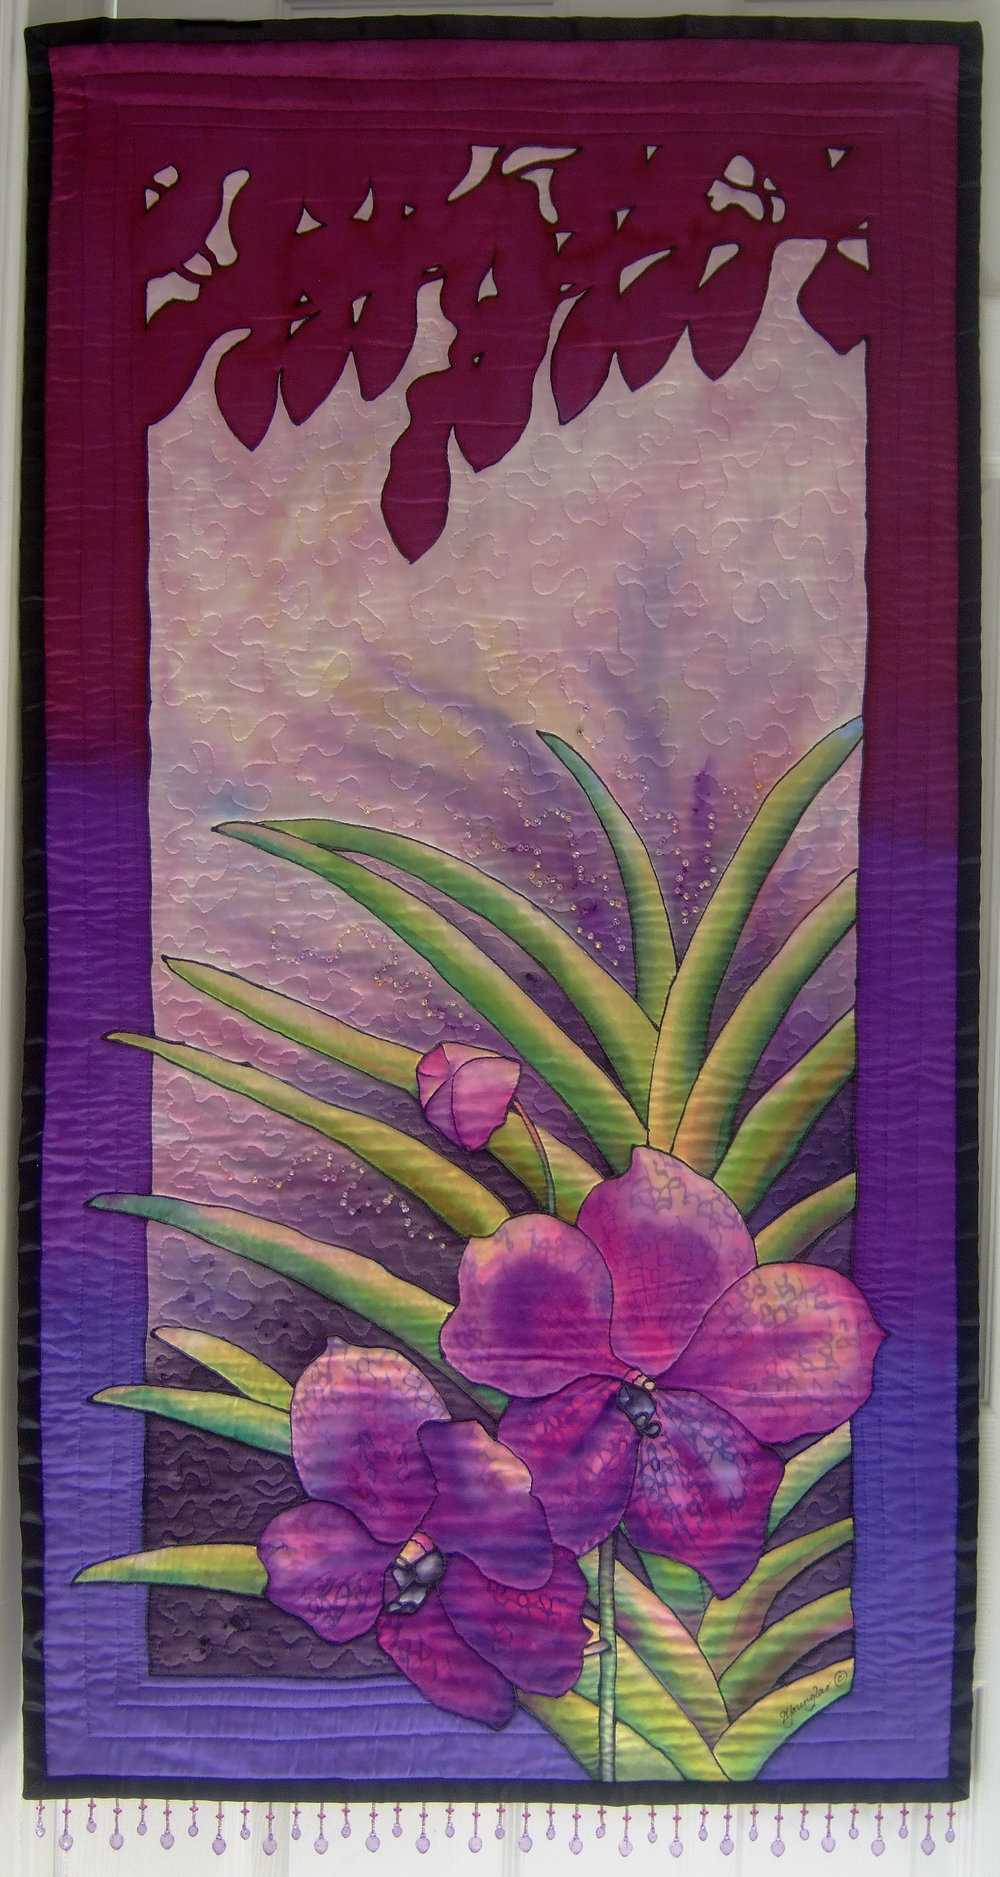 'Vanda Delight', 47 x 26 in. Quilted painting